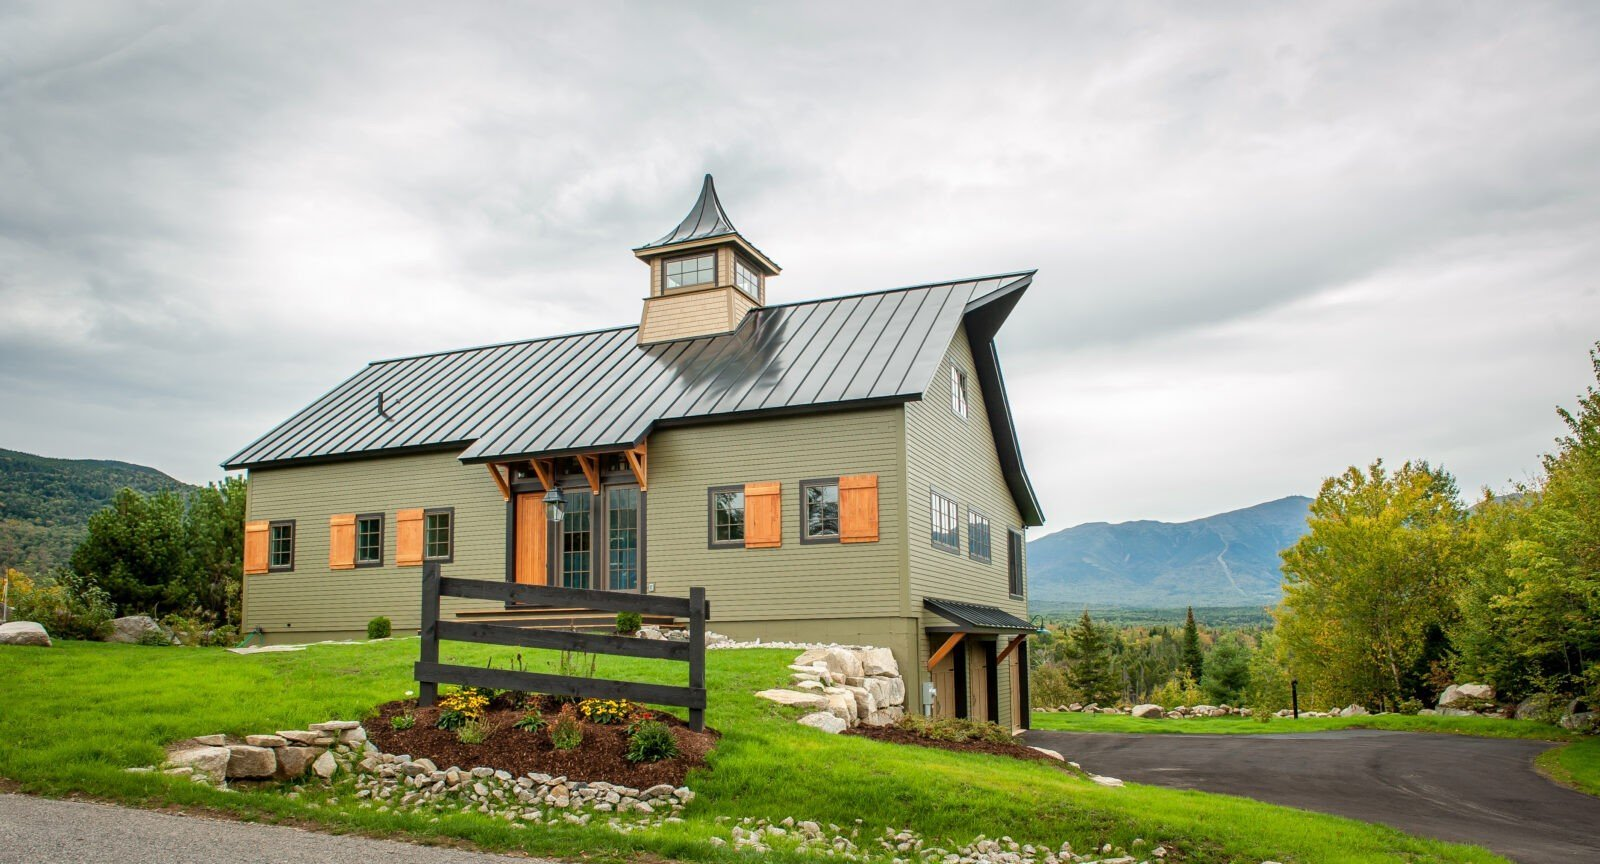 Top notch barn home plans from the ybh design team for Barn home designs